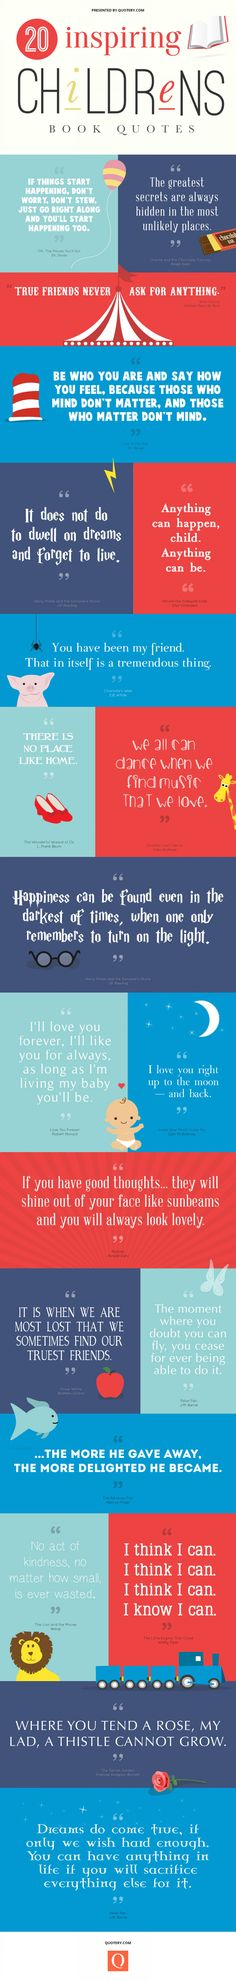 20 inspiring Childrens book quotes Perhaps, print each quote and pair with its book.  Shelf top display?